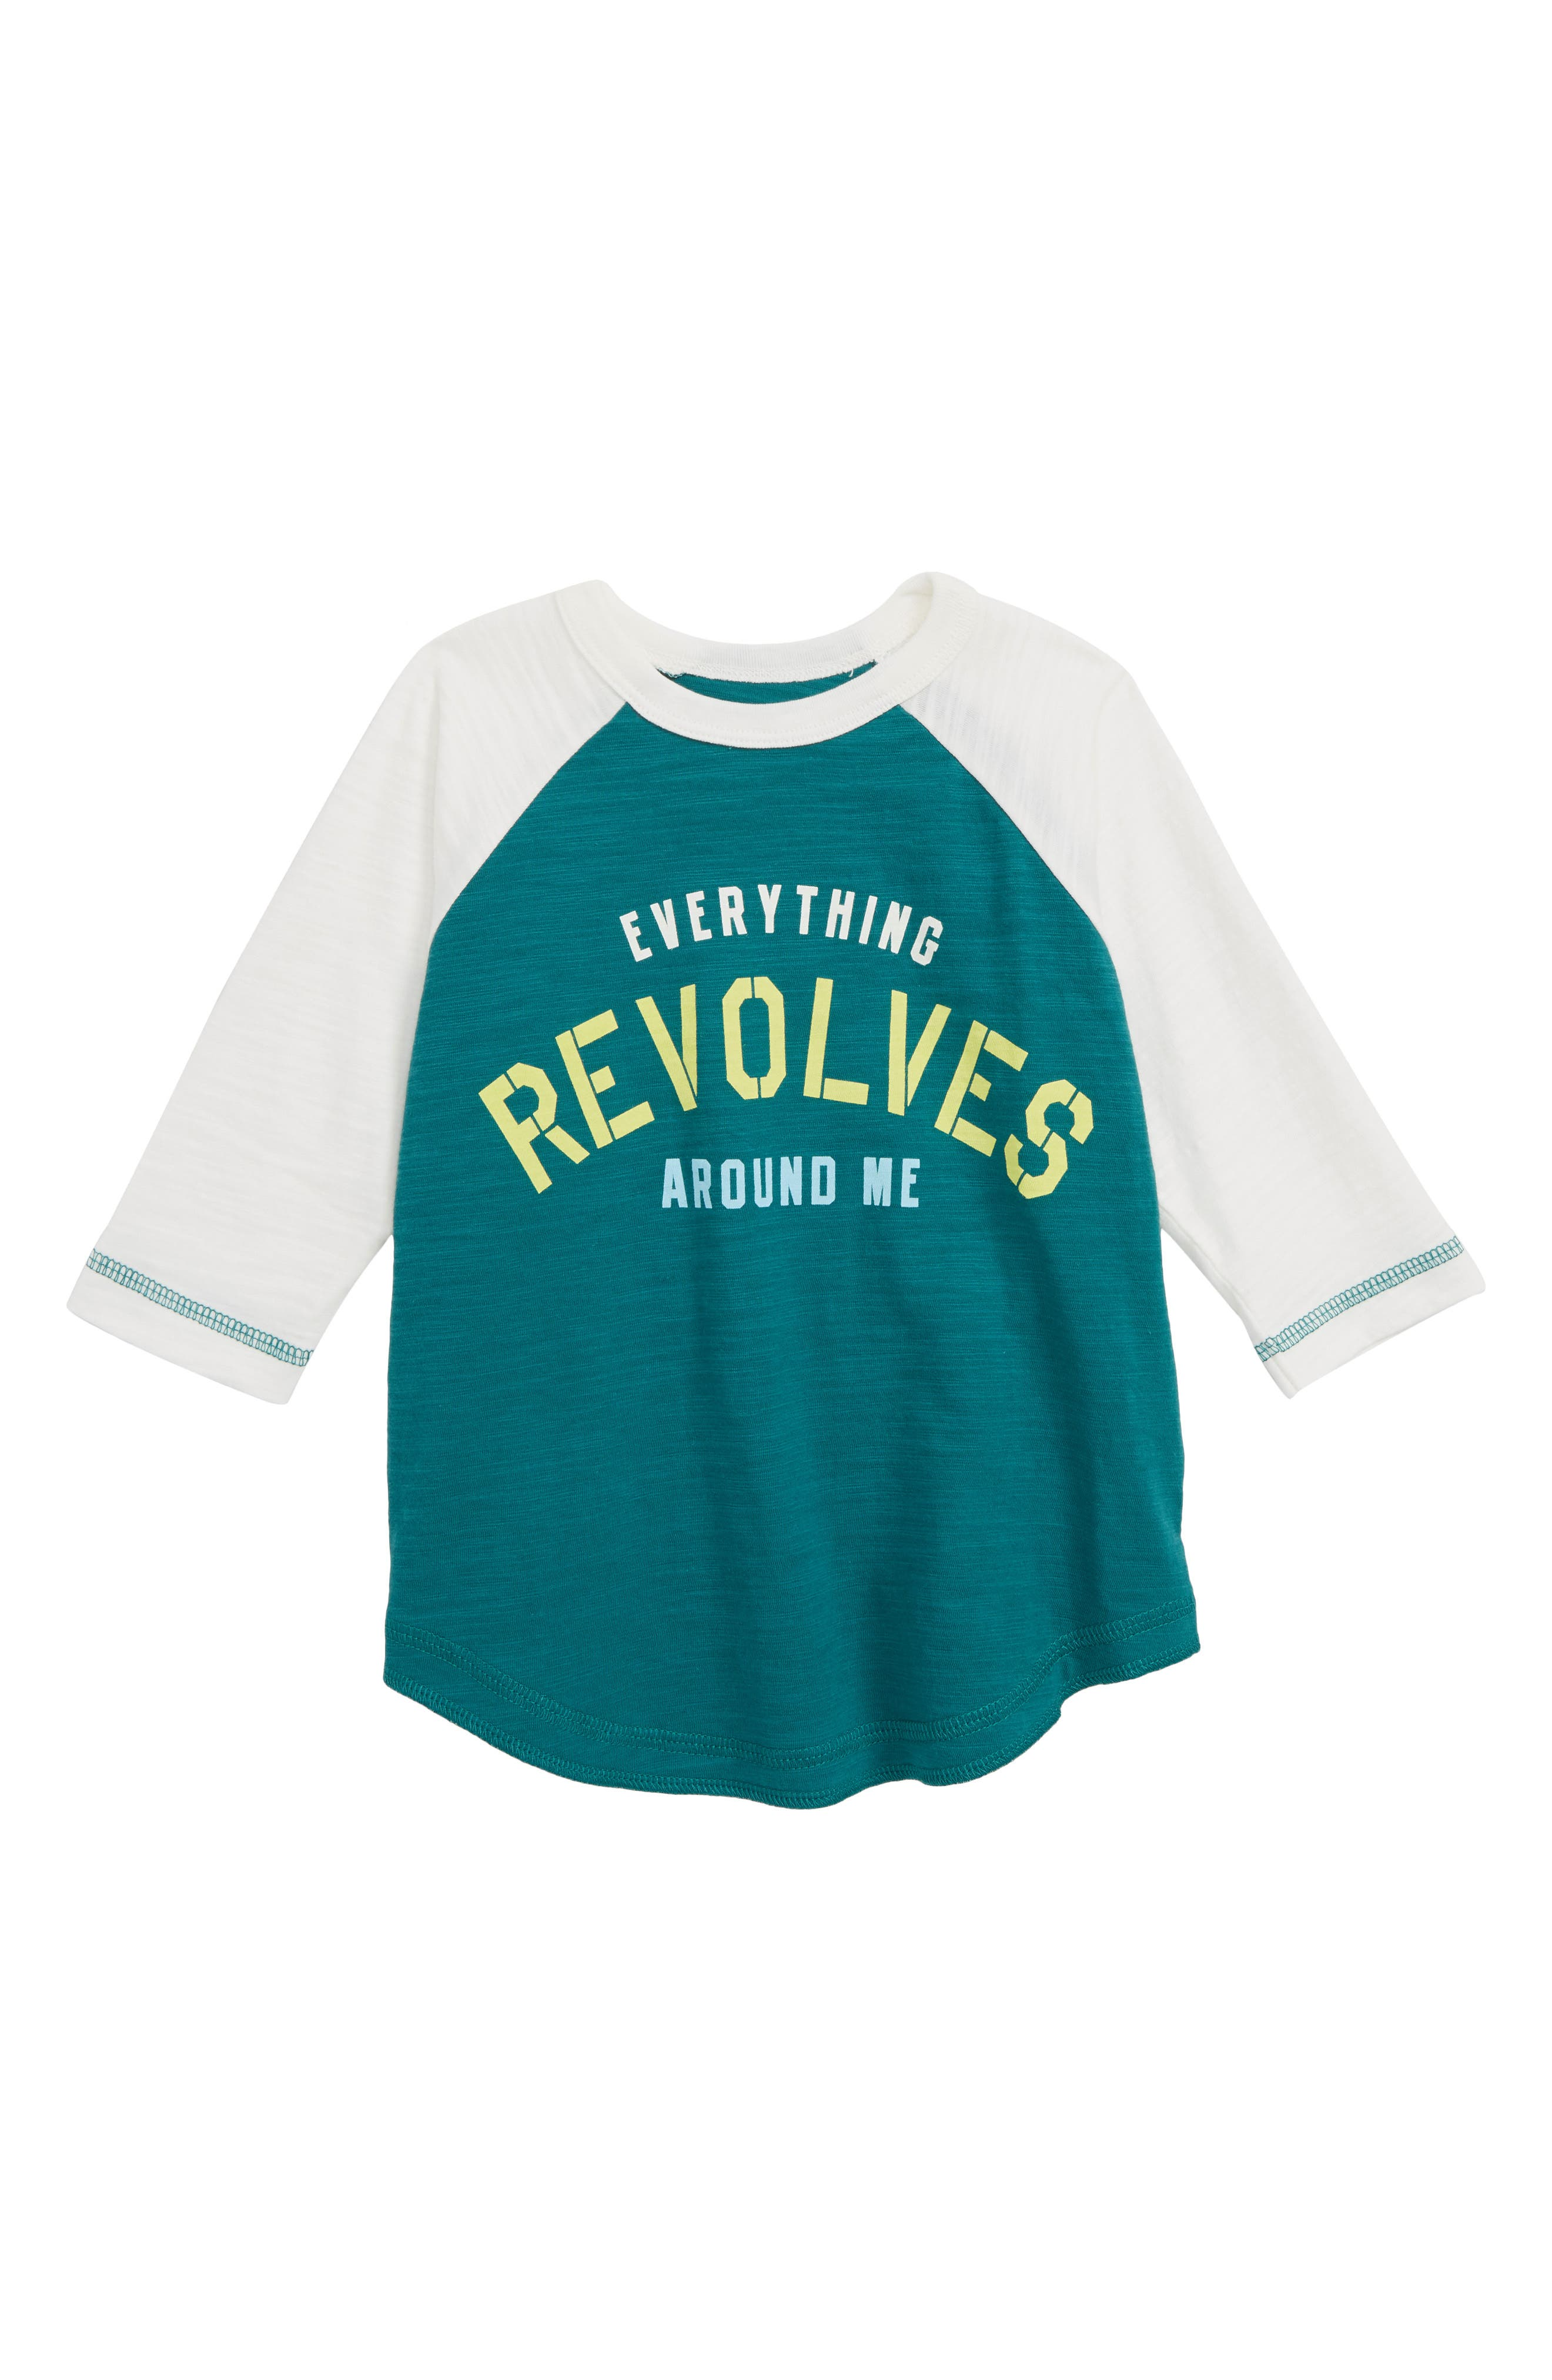 PEEK AREN'T YOU CURIOUS Revolves Around Me T-Shirt, Main, color, GREEN